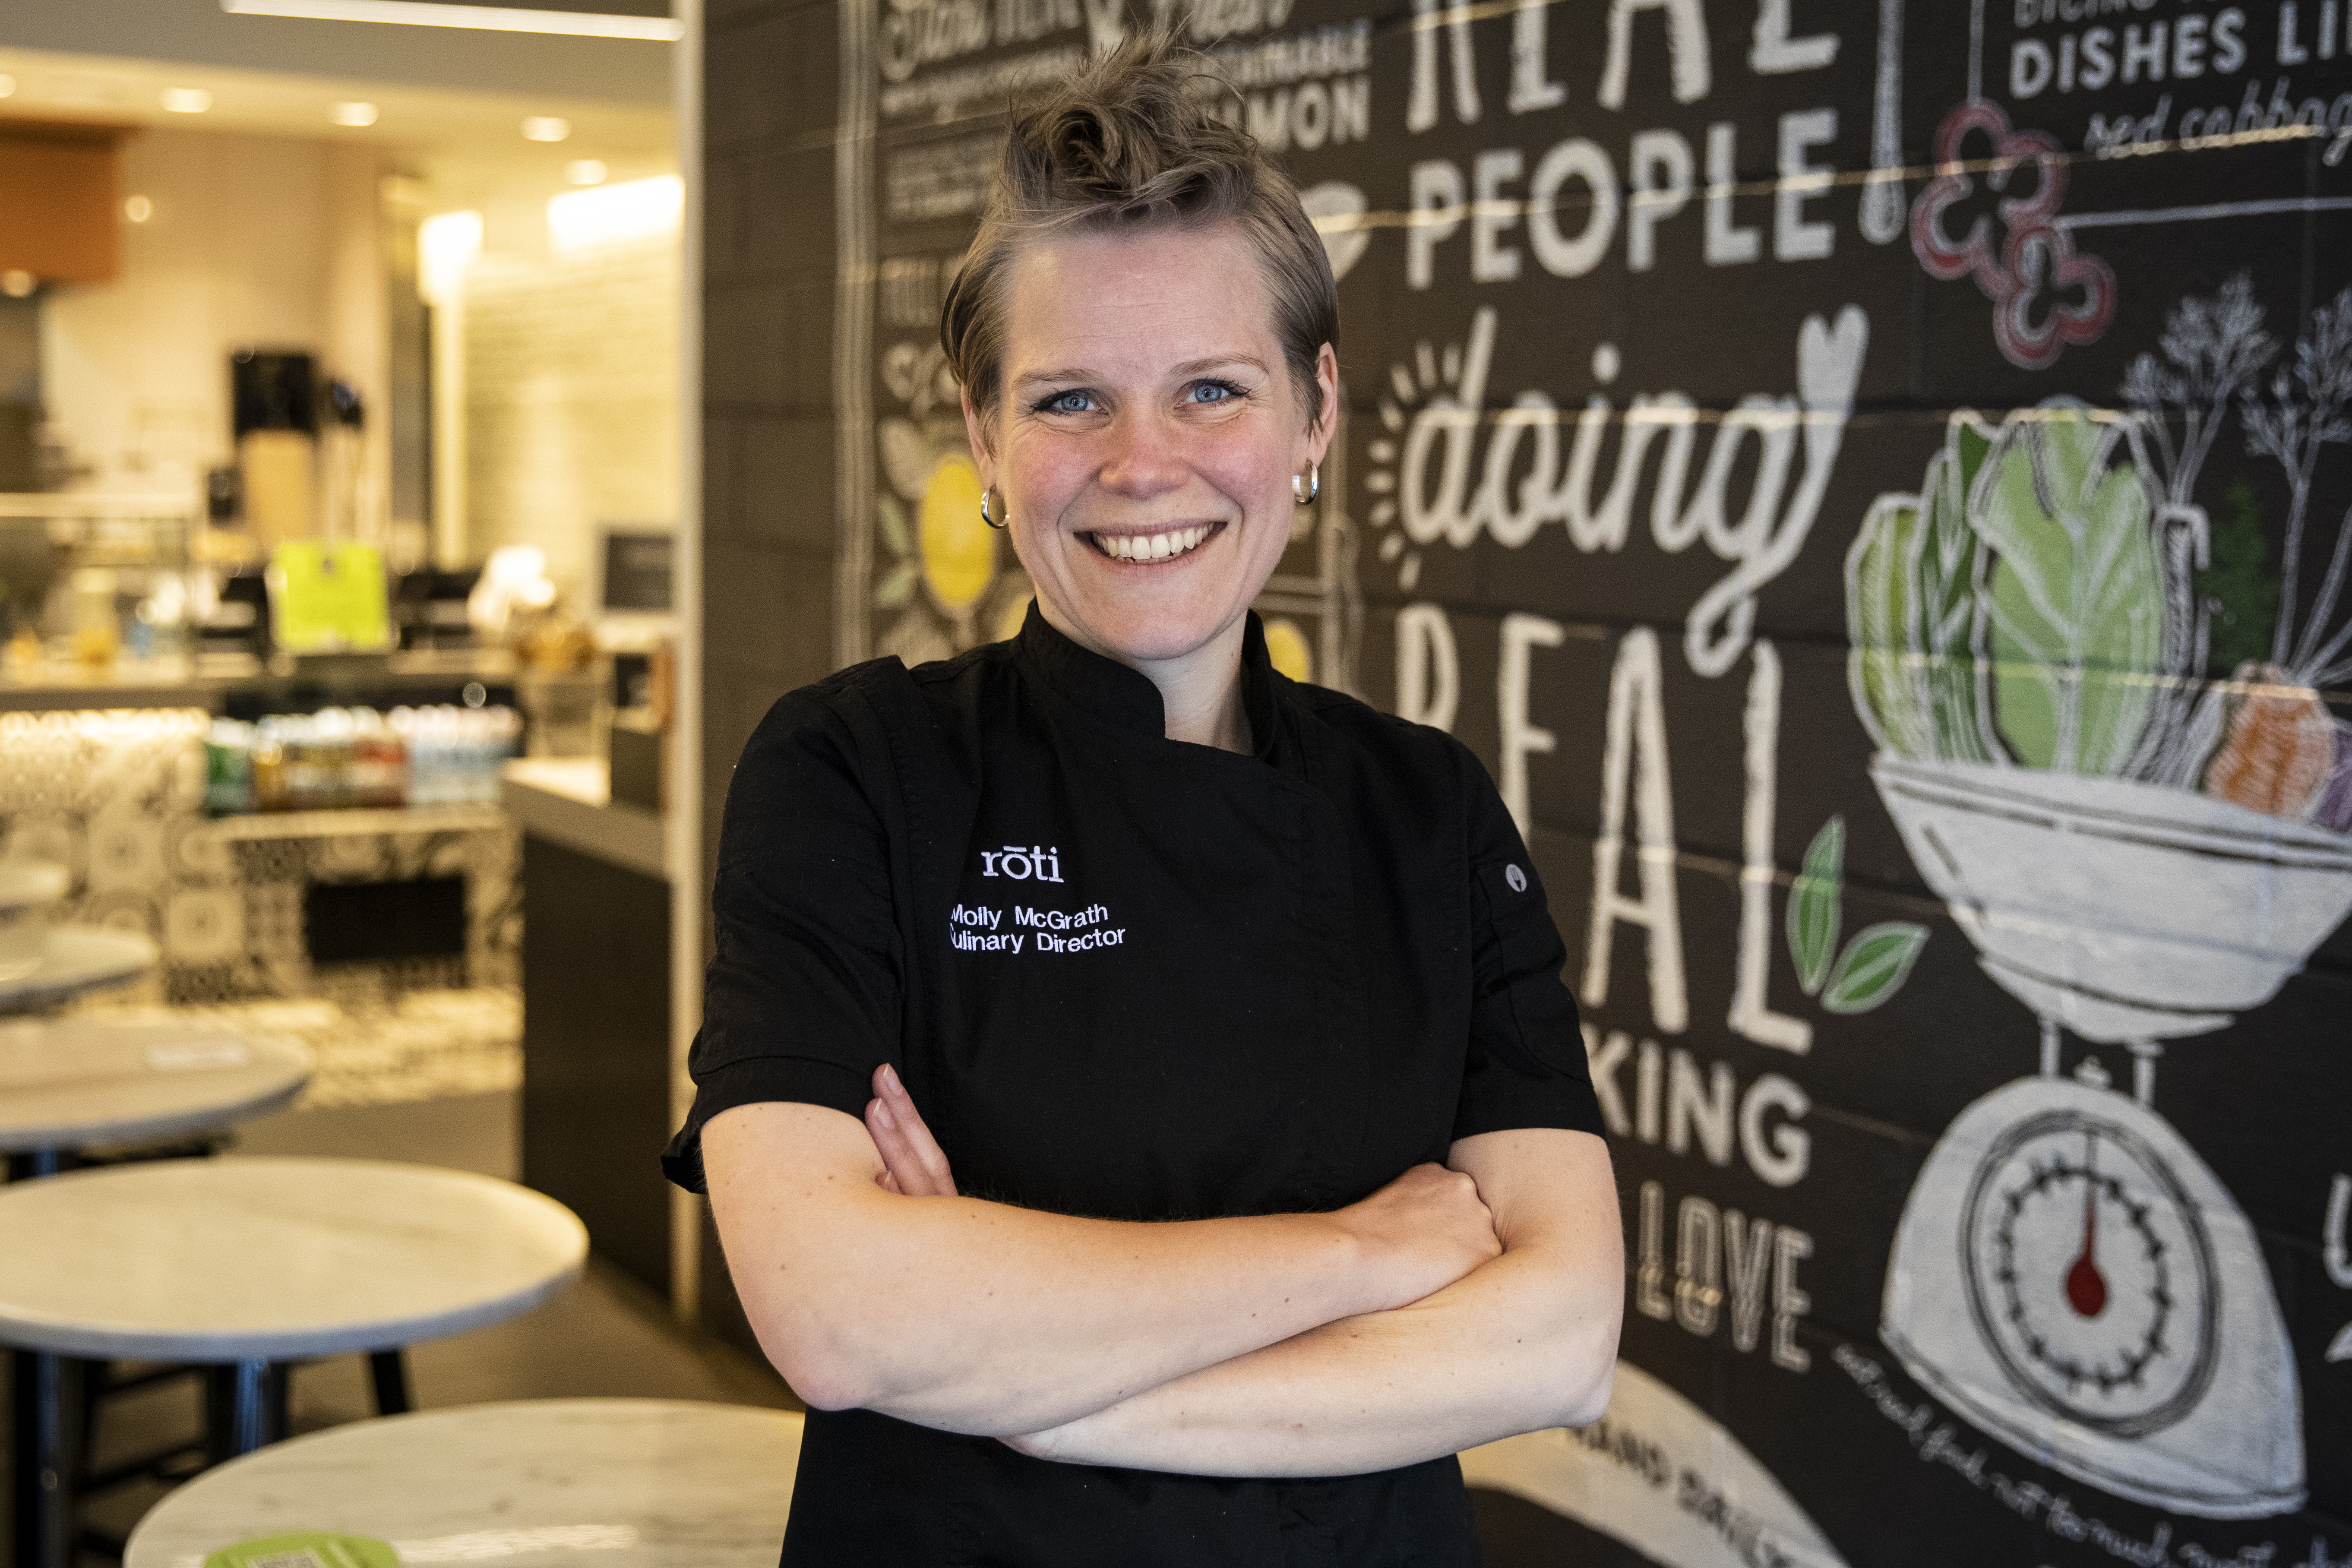 Molly McGrath, head chef and culinary director at Roti Modern Mediterranean, poses for a portrait at the restaurant at 1012 W. Randolph St., Thursday morning, Jan. 16, 2020.